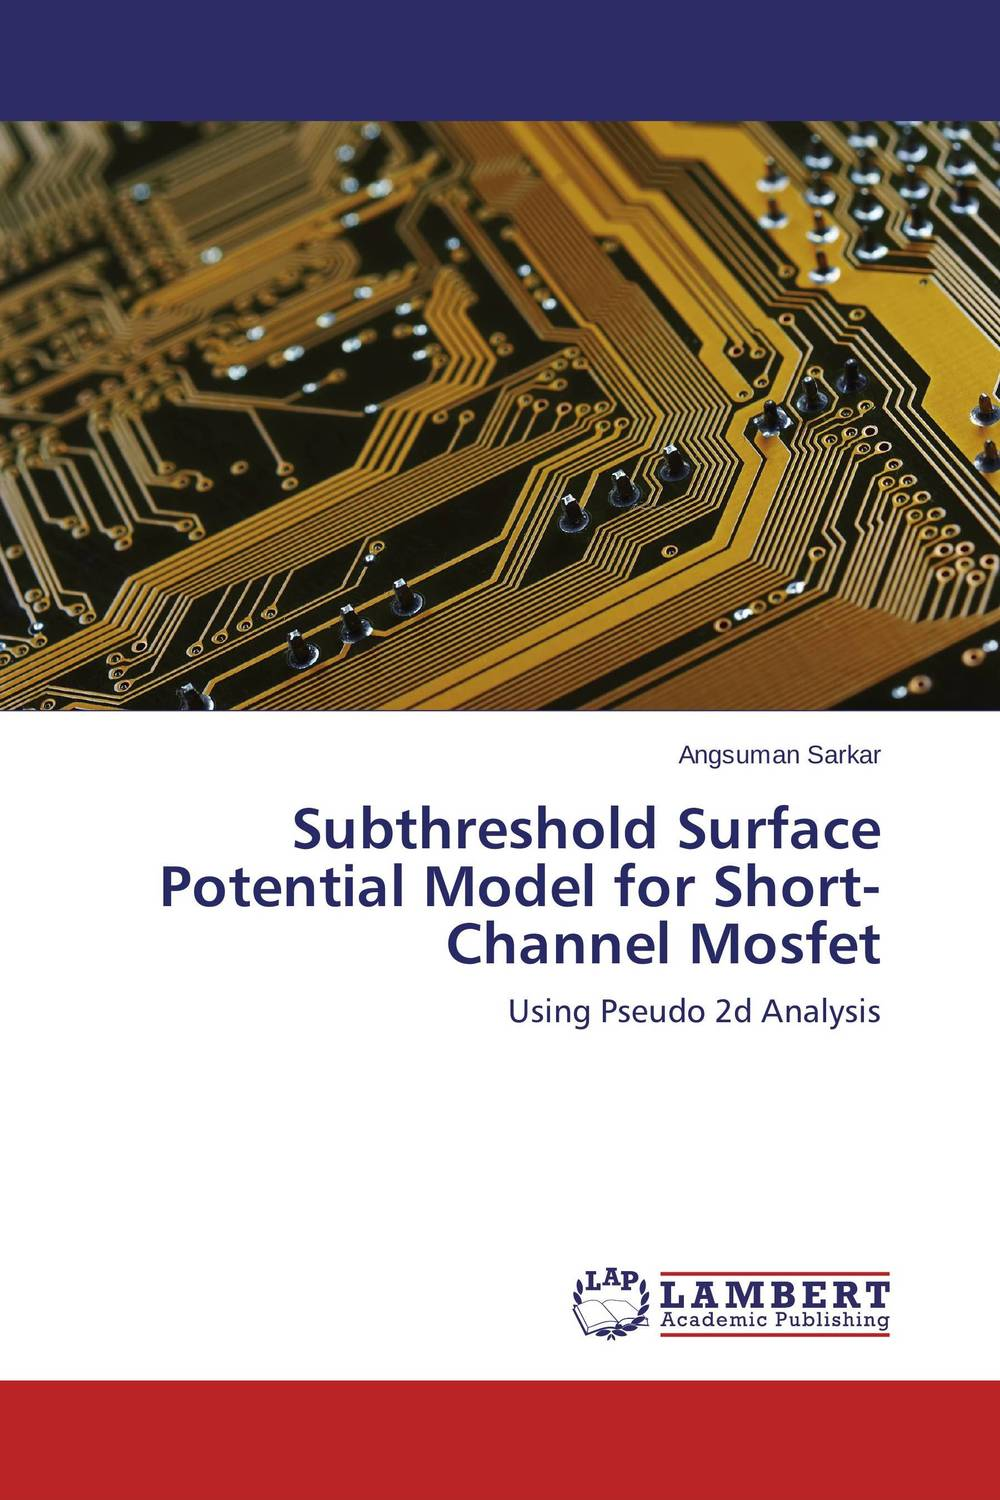 Subthreshold Surface Potential Model for Short-Channel Mosfet hot assessment guidance model for hemostatic of surface blutpunkte surface bleeding point hemostasis model